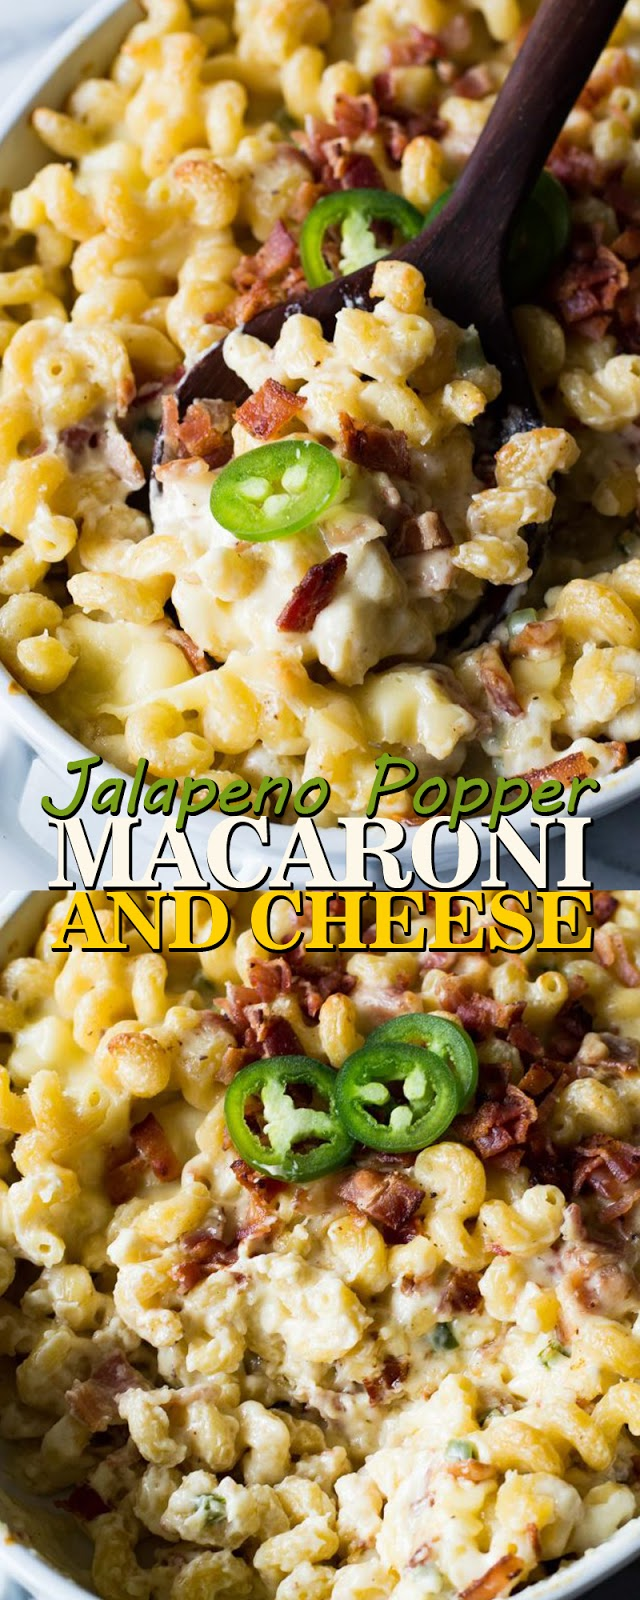 JALAPENO POPPER MACARONI AND CHEESE